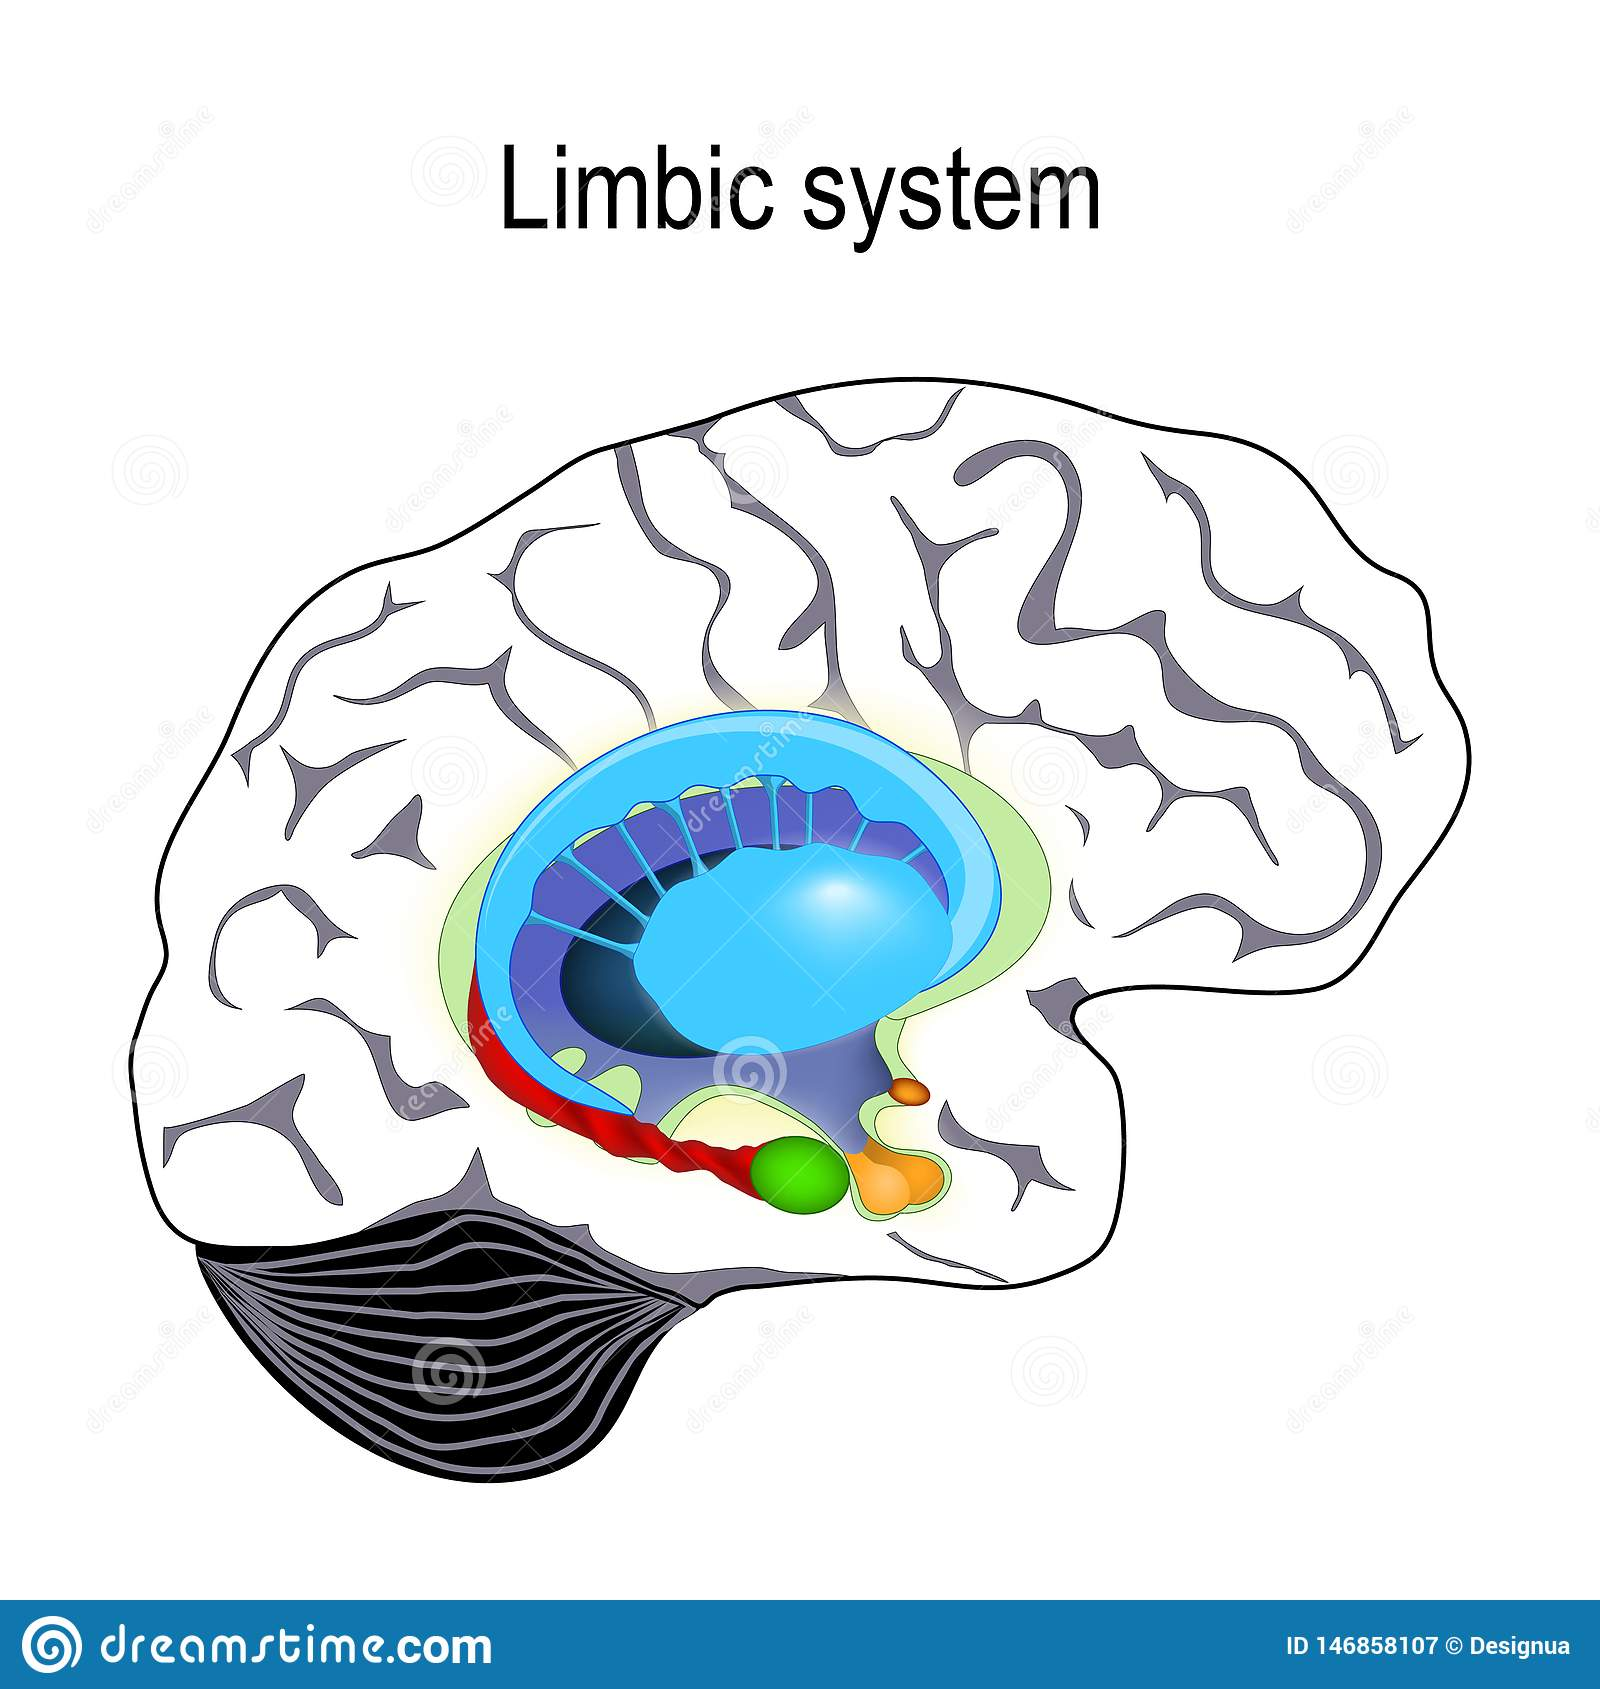 Limbic System Cross Section Of The Human Brain Stock Vector Illustration Of Head Cerebral 146858107 The mammillary bodies are a pair of small round bodies, located on the undersurface of the brain that this circuit, from amygdalae to mammillary bodies, and then on to the thalamus, is part of the. https www dreamstime com limbic system cross section human brain anatomical components limbic system mammillary body basal ganglia pituitary image146858107